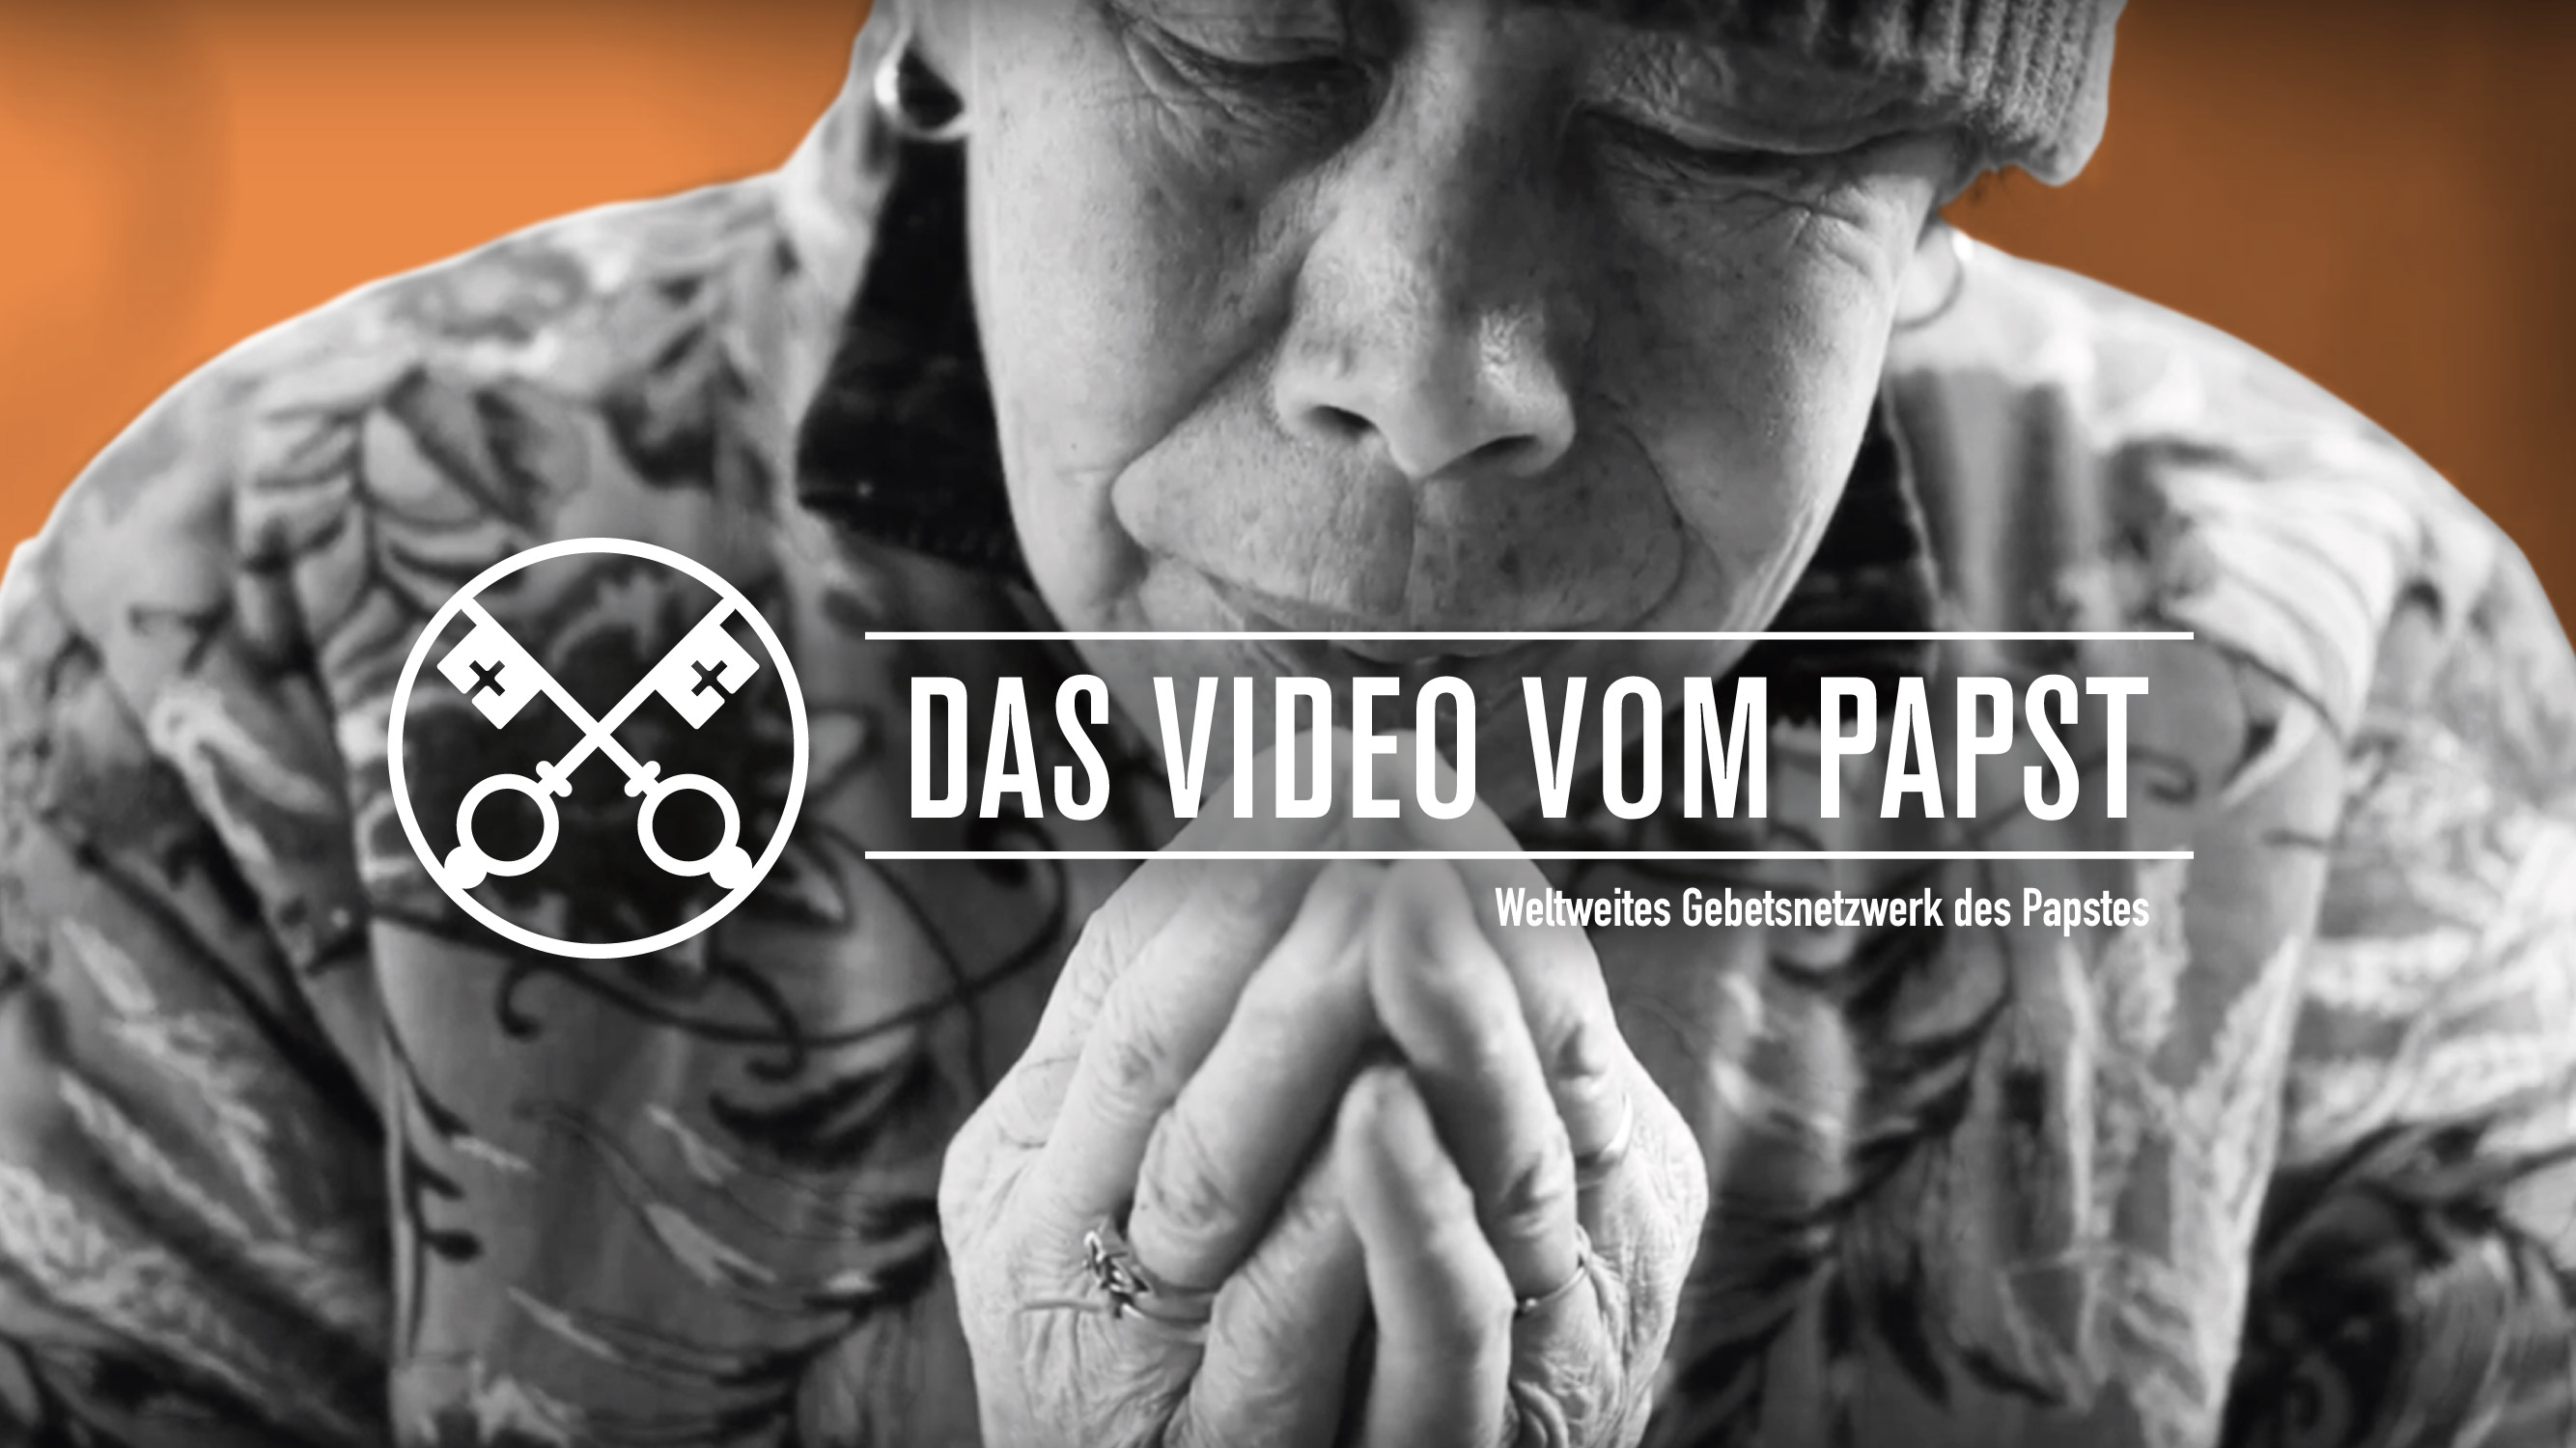 Official Image - TPV 3 2020 DE - Das Video vom Papst - Die Katholiken in China